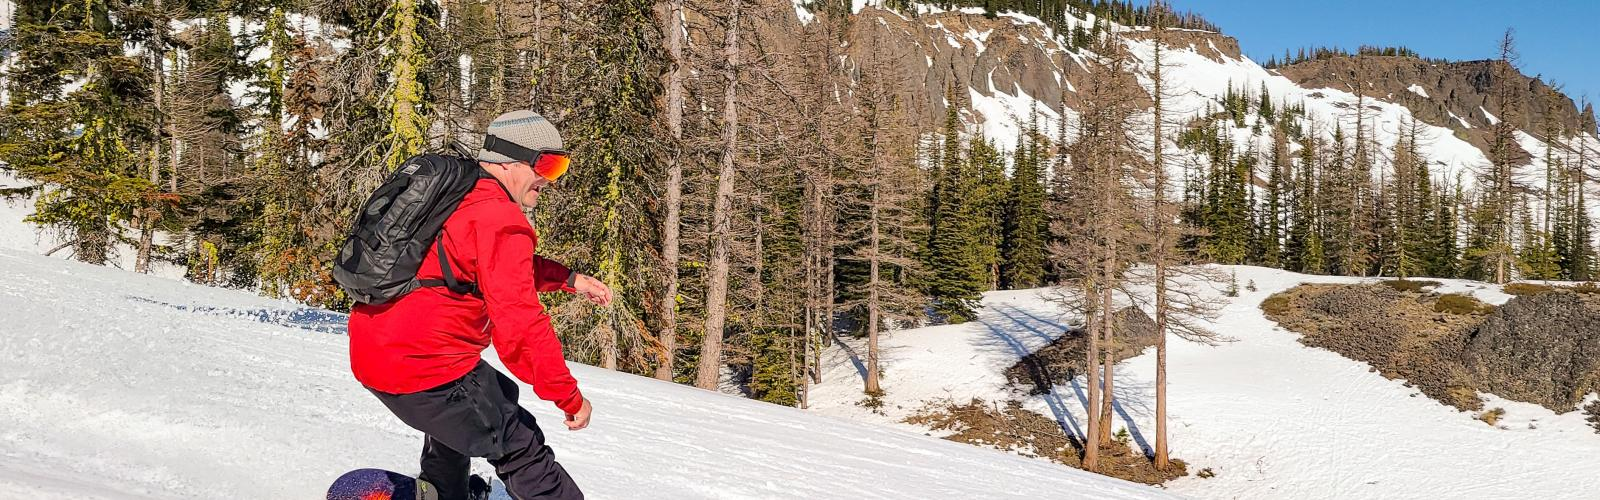 snowboarder smiling while making a turn on a sunny spring day with Bomber cliffs in the Background